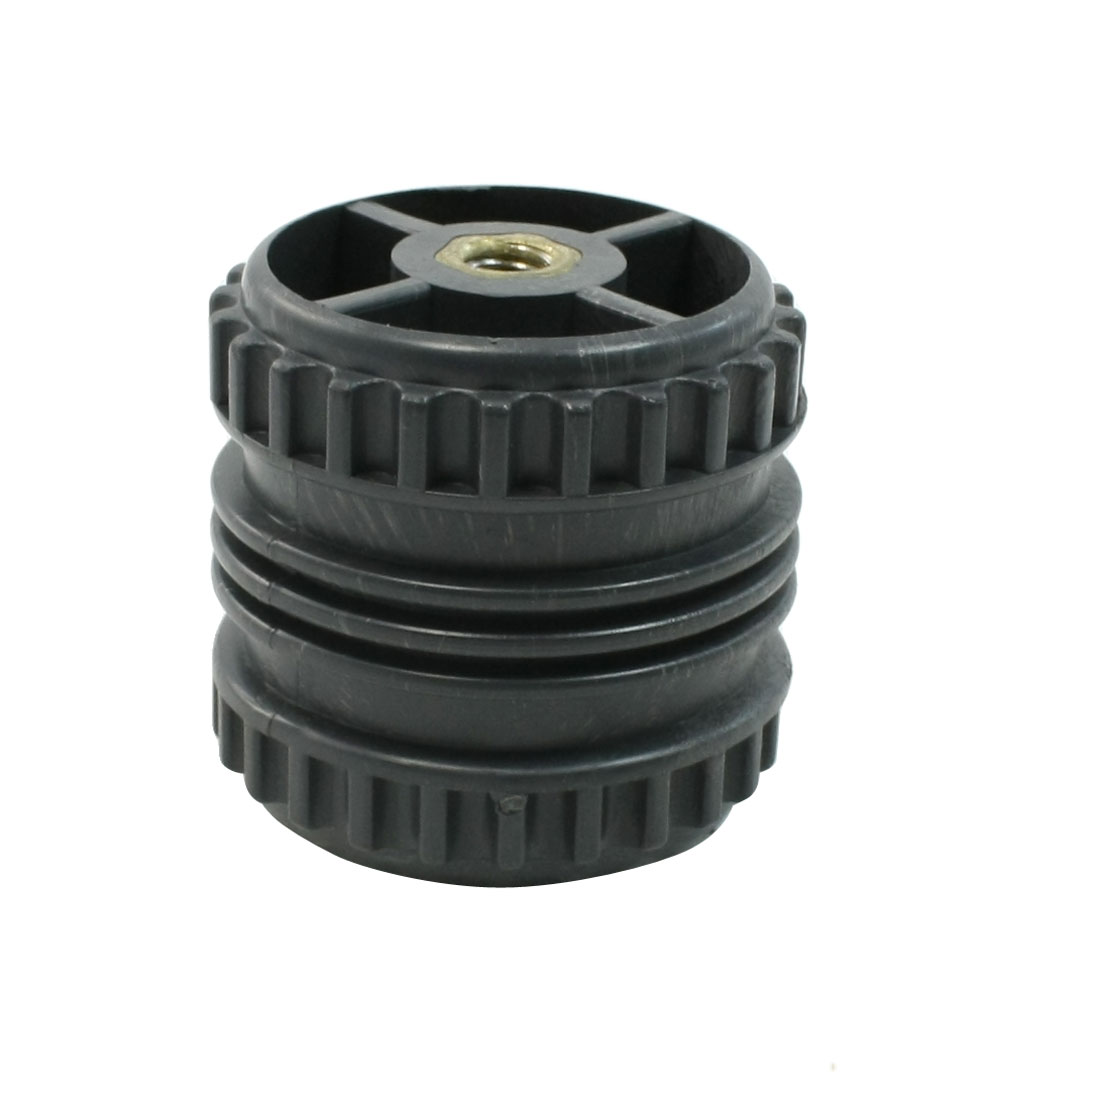 GGD50*50 8mm Female Thread 50mm High Cylindeical Insulator for Bus Bar